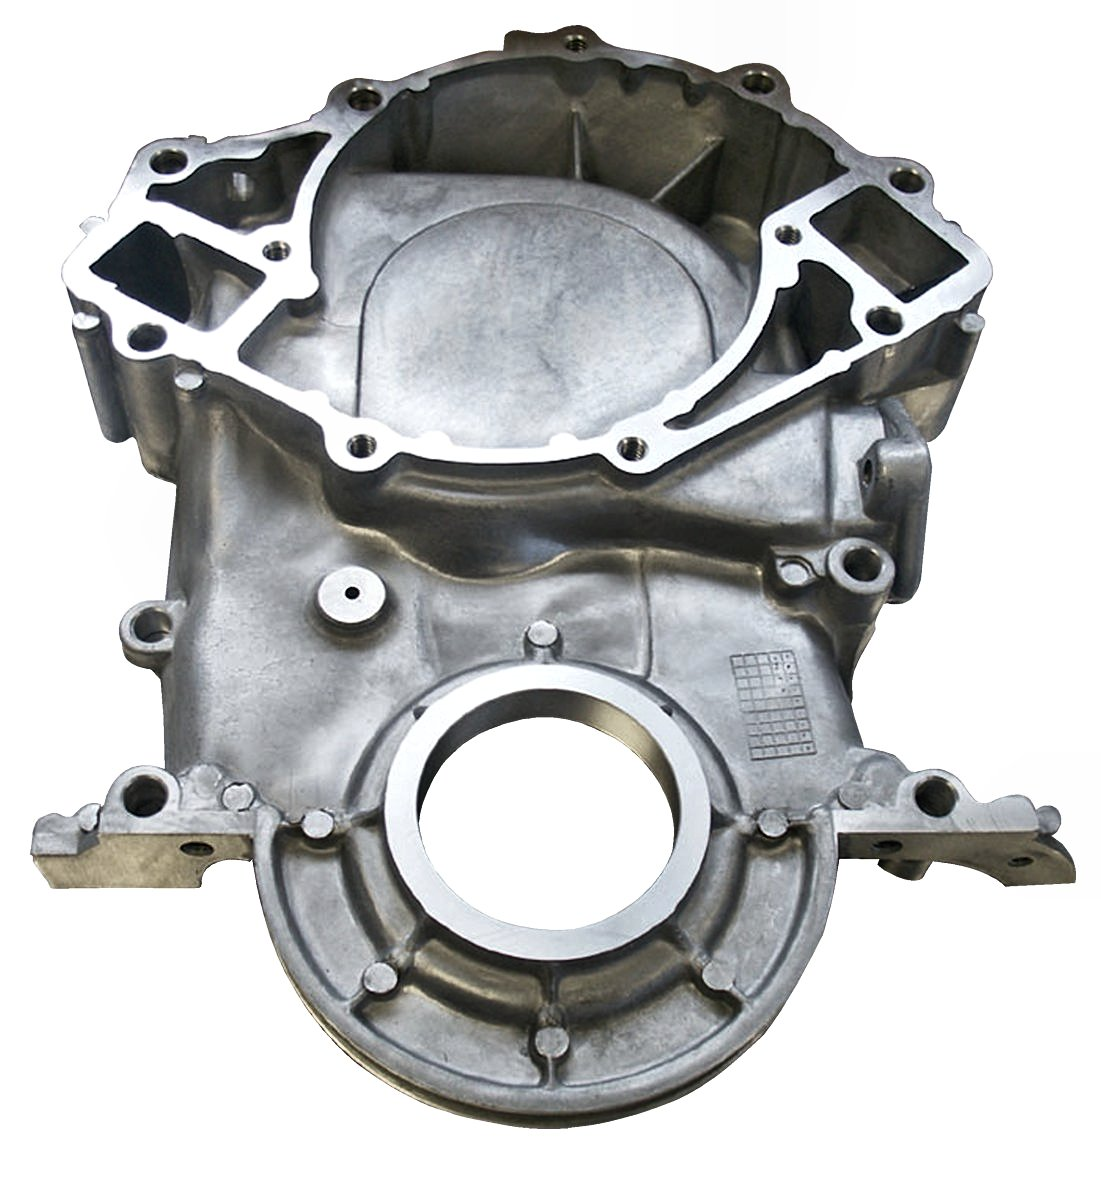 460 7.5l timing chain cover-broncograveyard.com ford 58 timing cover diagram